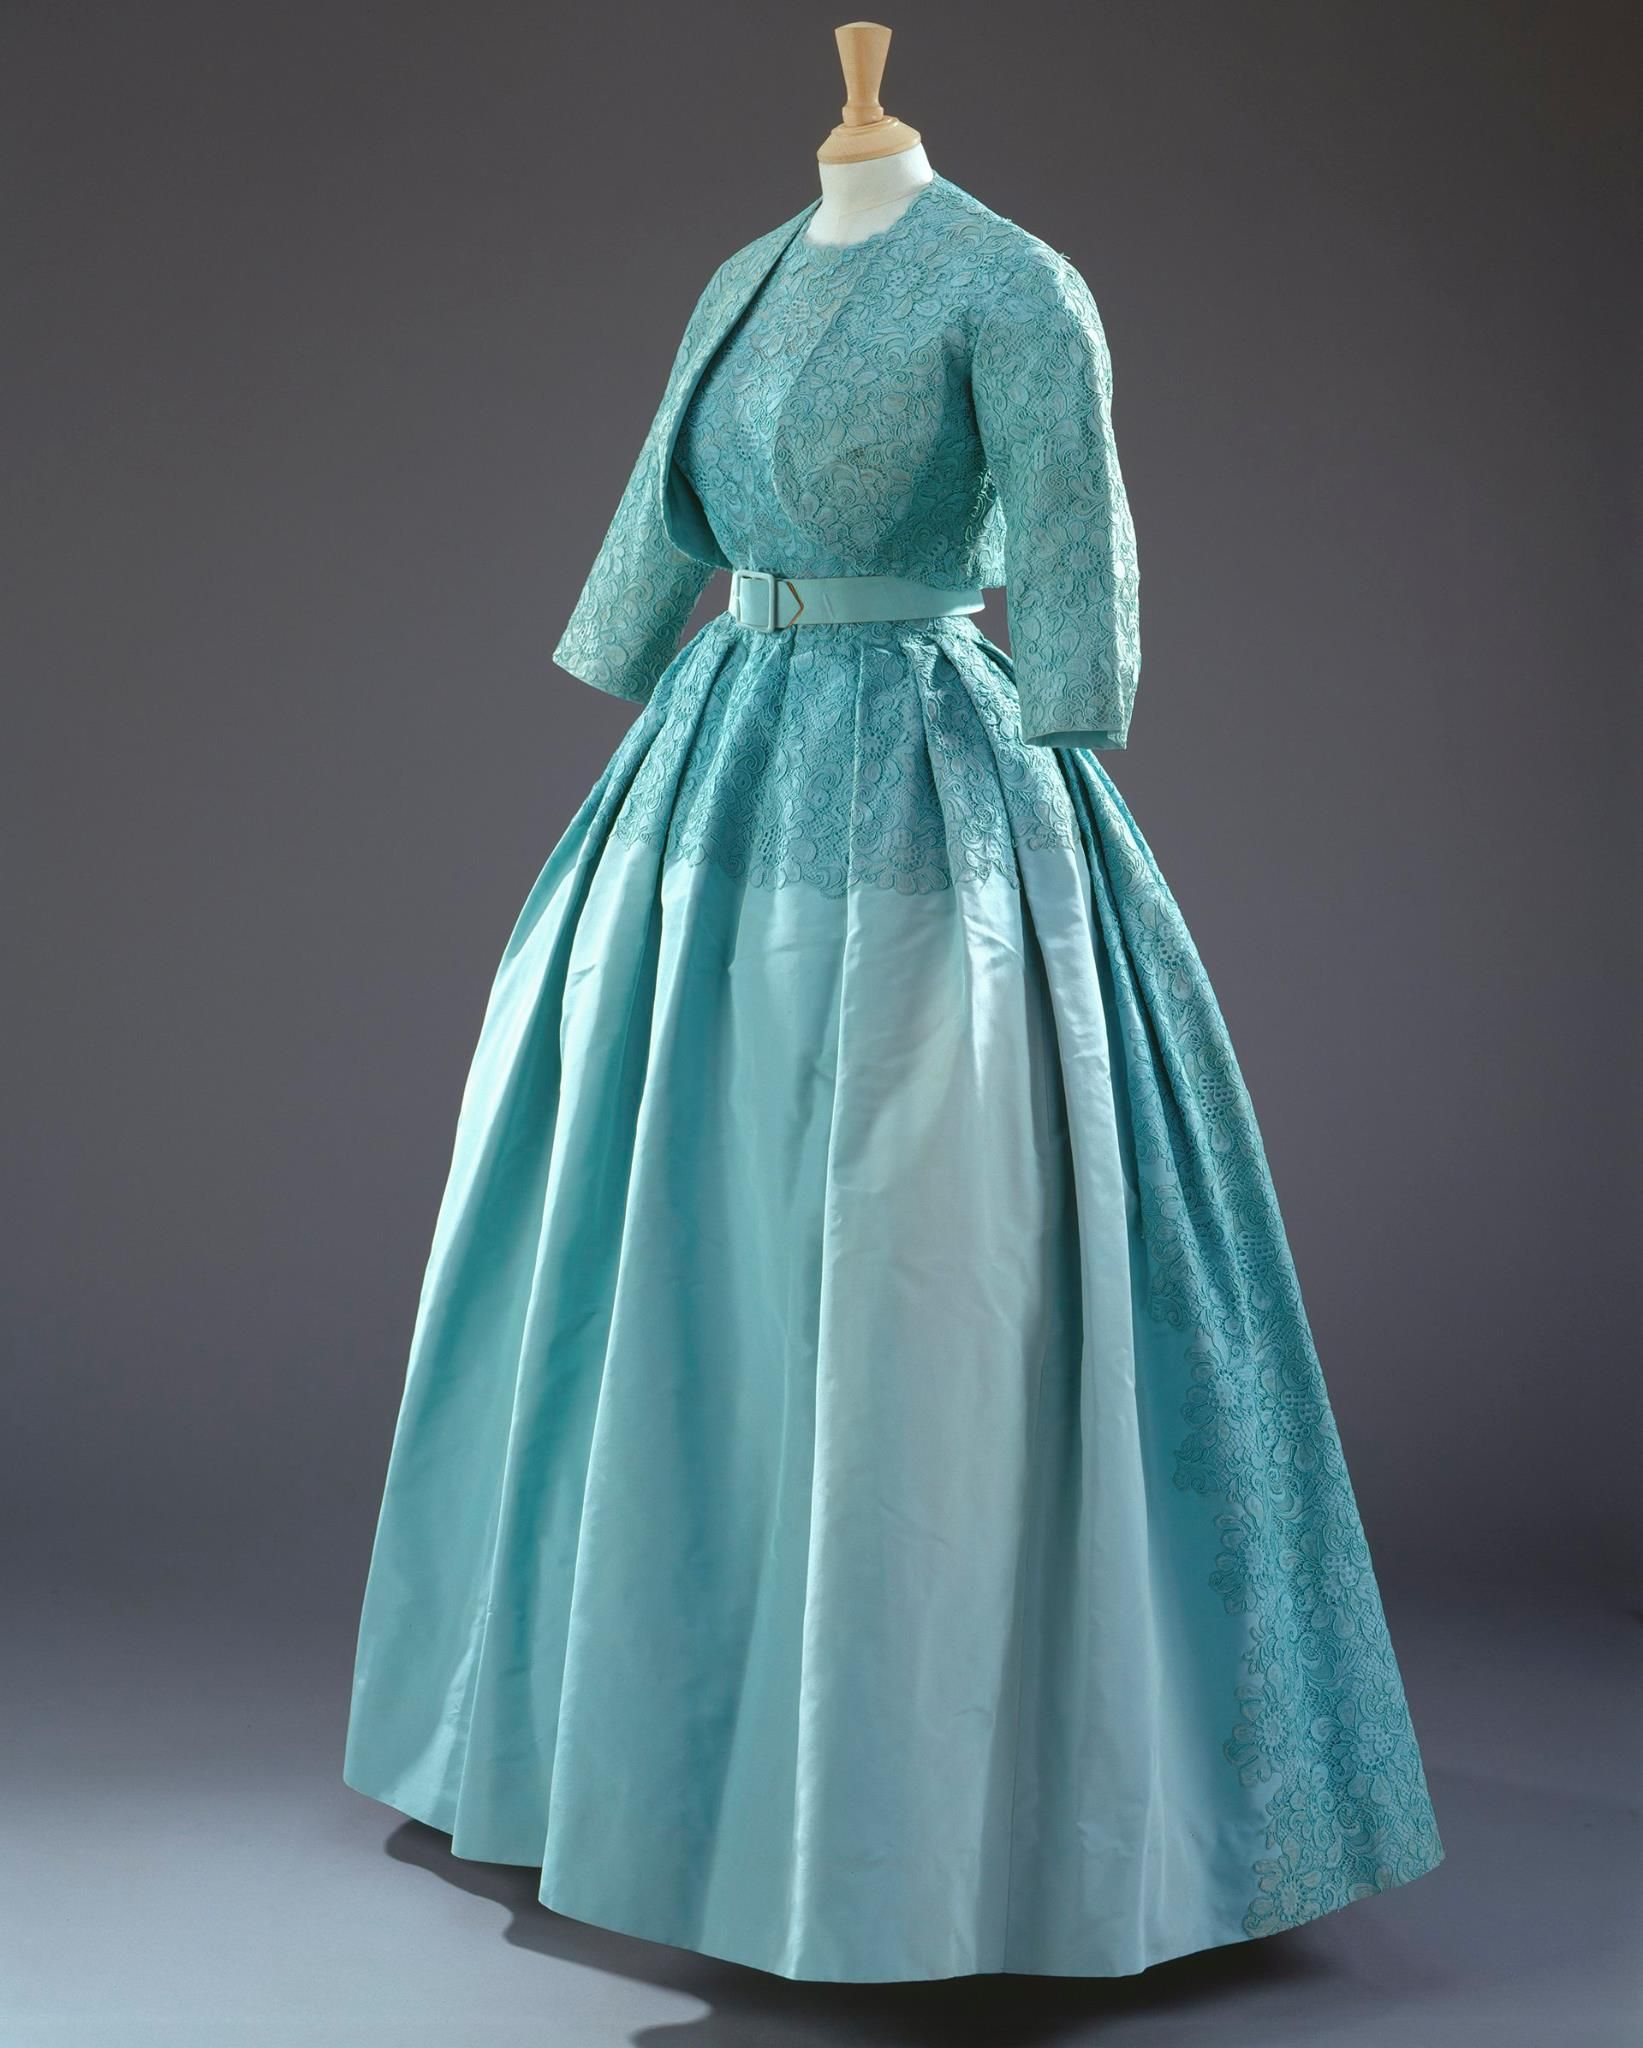 Queen elizabeth green dress  Norman Hartnell turquoiseblue dress with a matching bolero jacket